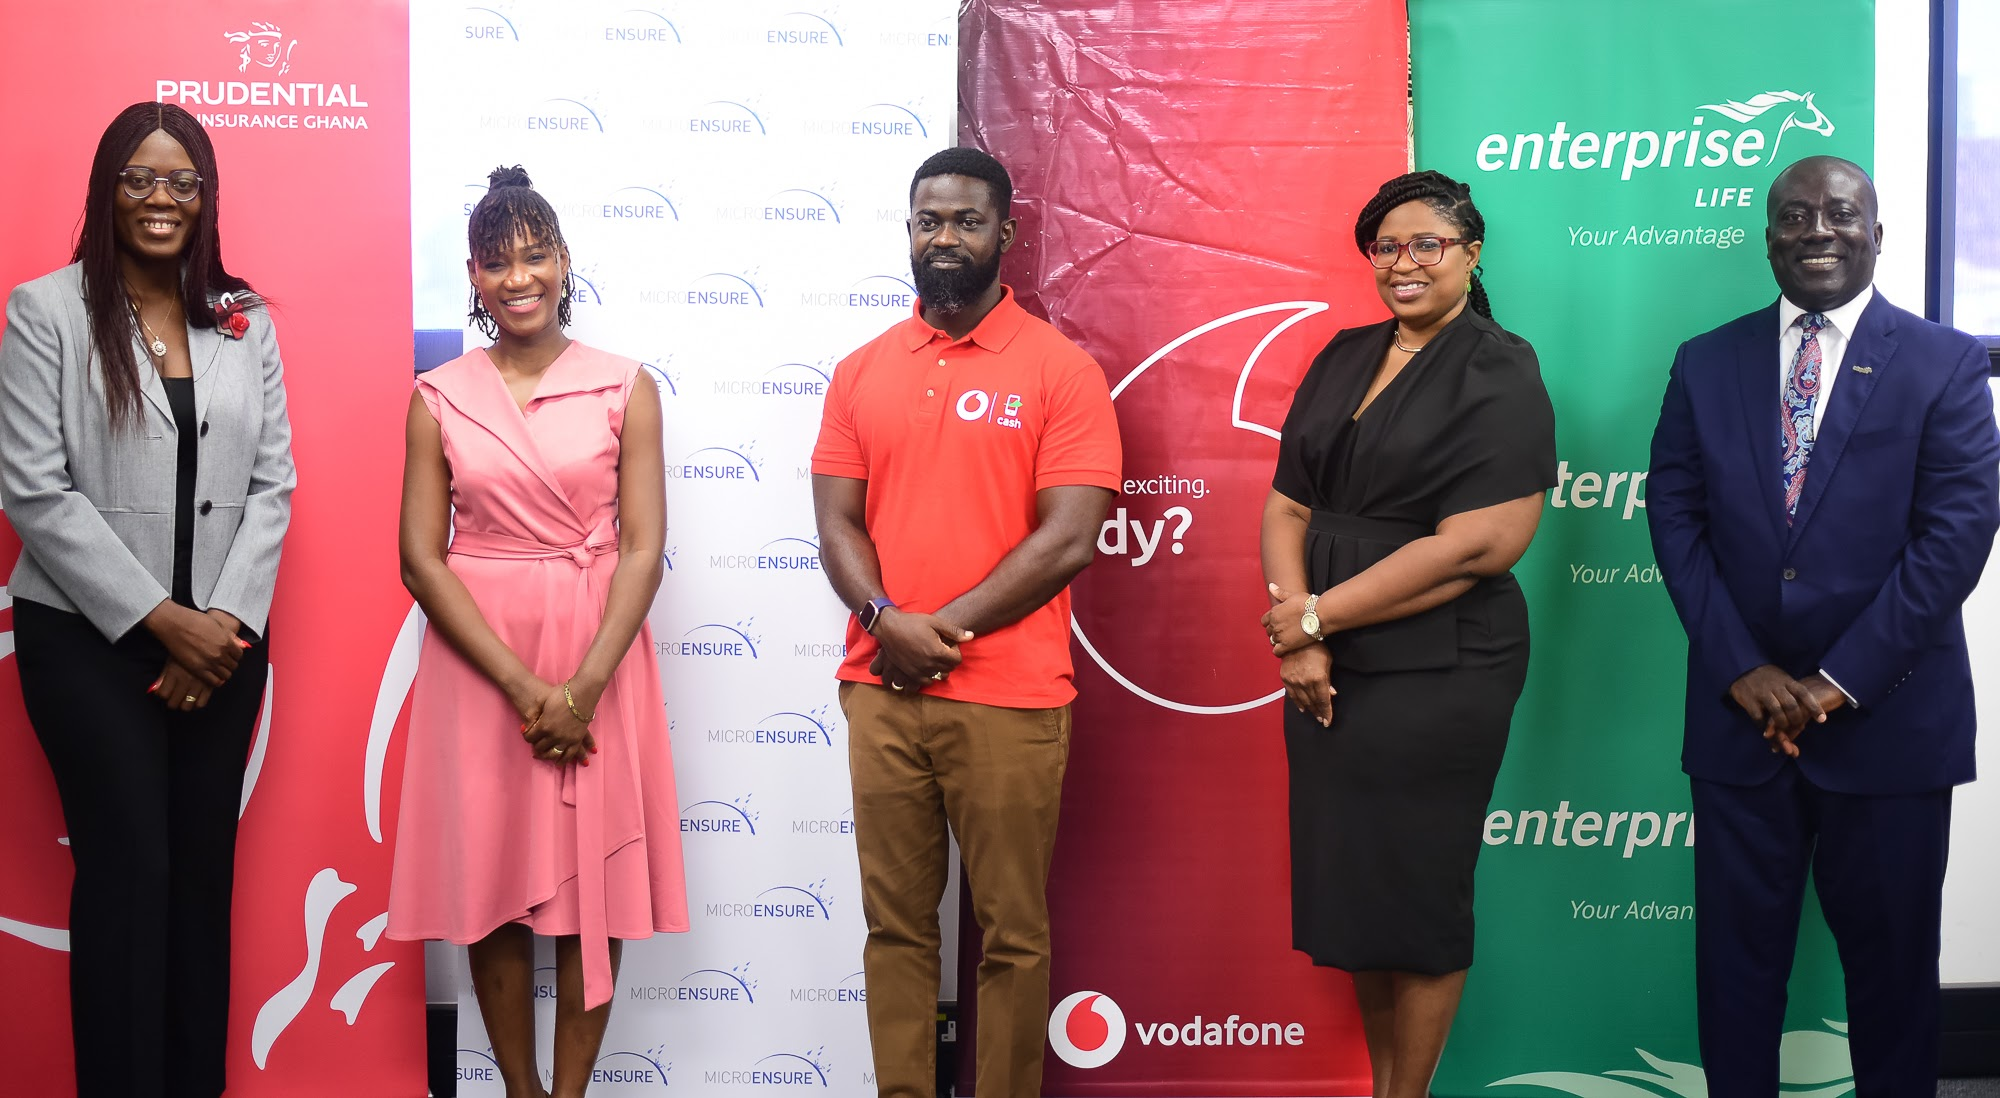 Prudential Life partners with Vodafone, MicroEnsure and Enterprise to launch an innovative mobile insurance plan for Ghanaians